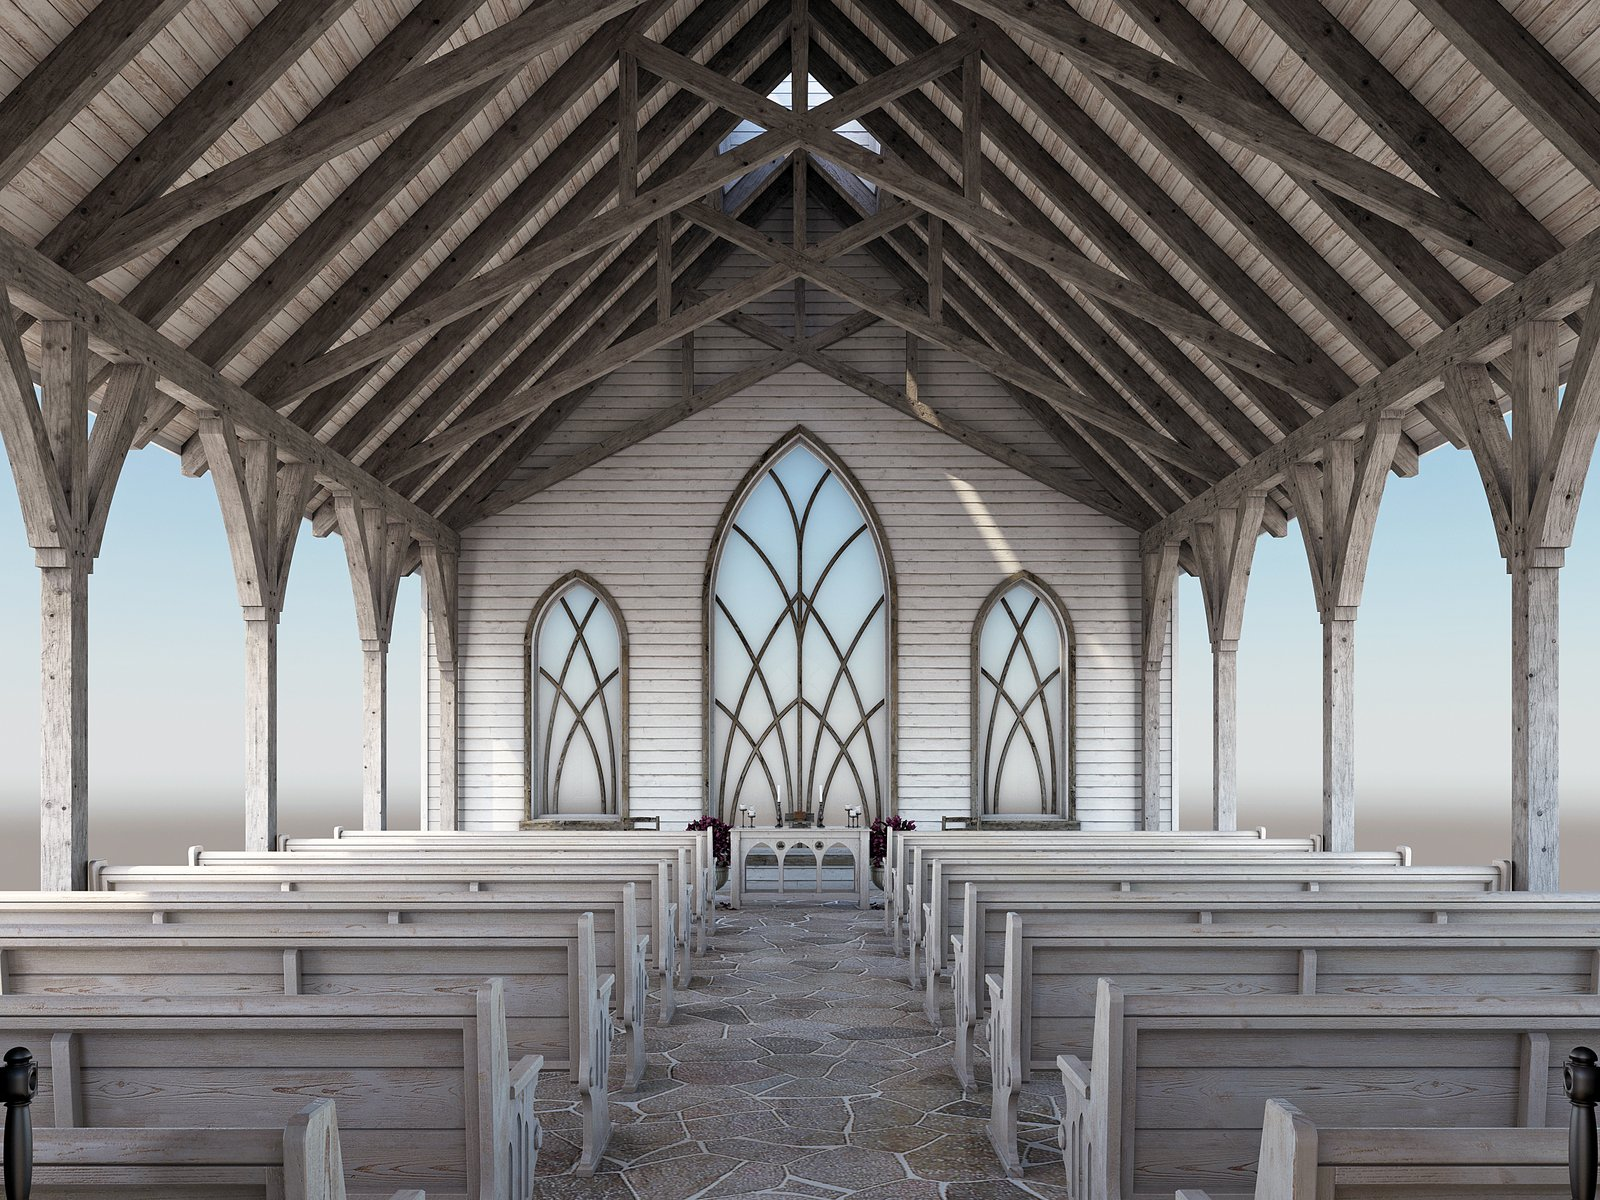 JONES_CHAPEL_12.14.18_interior1.jpg